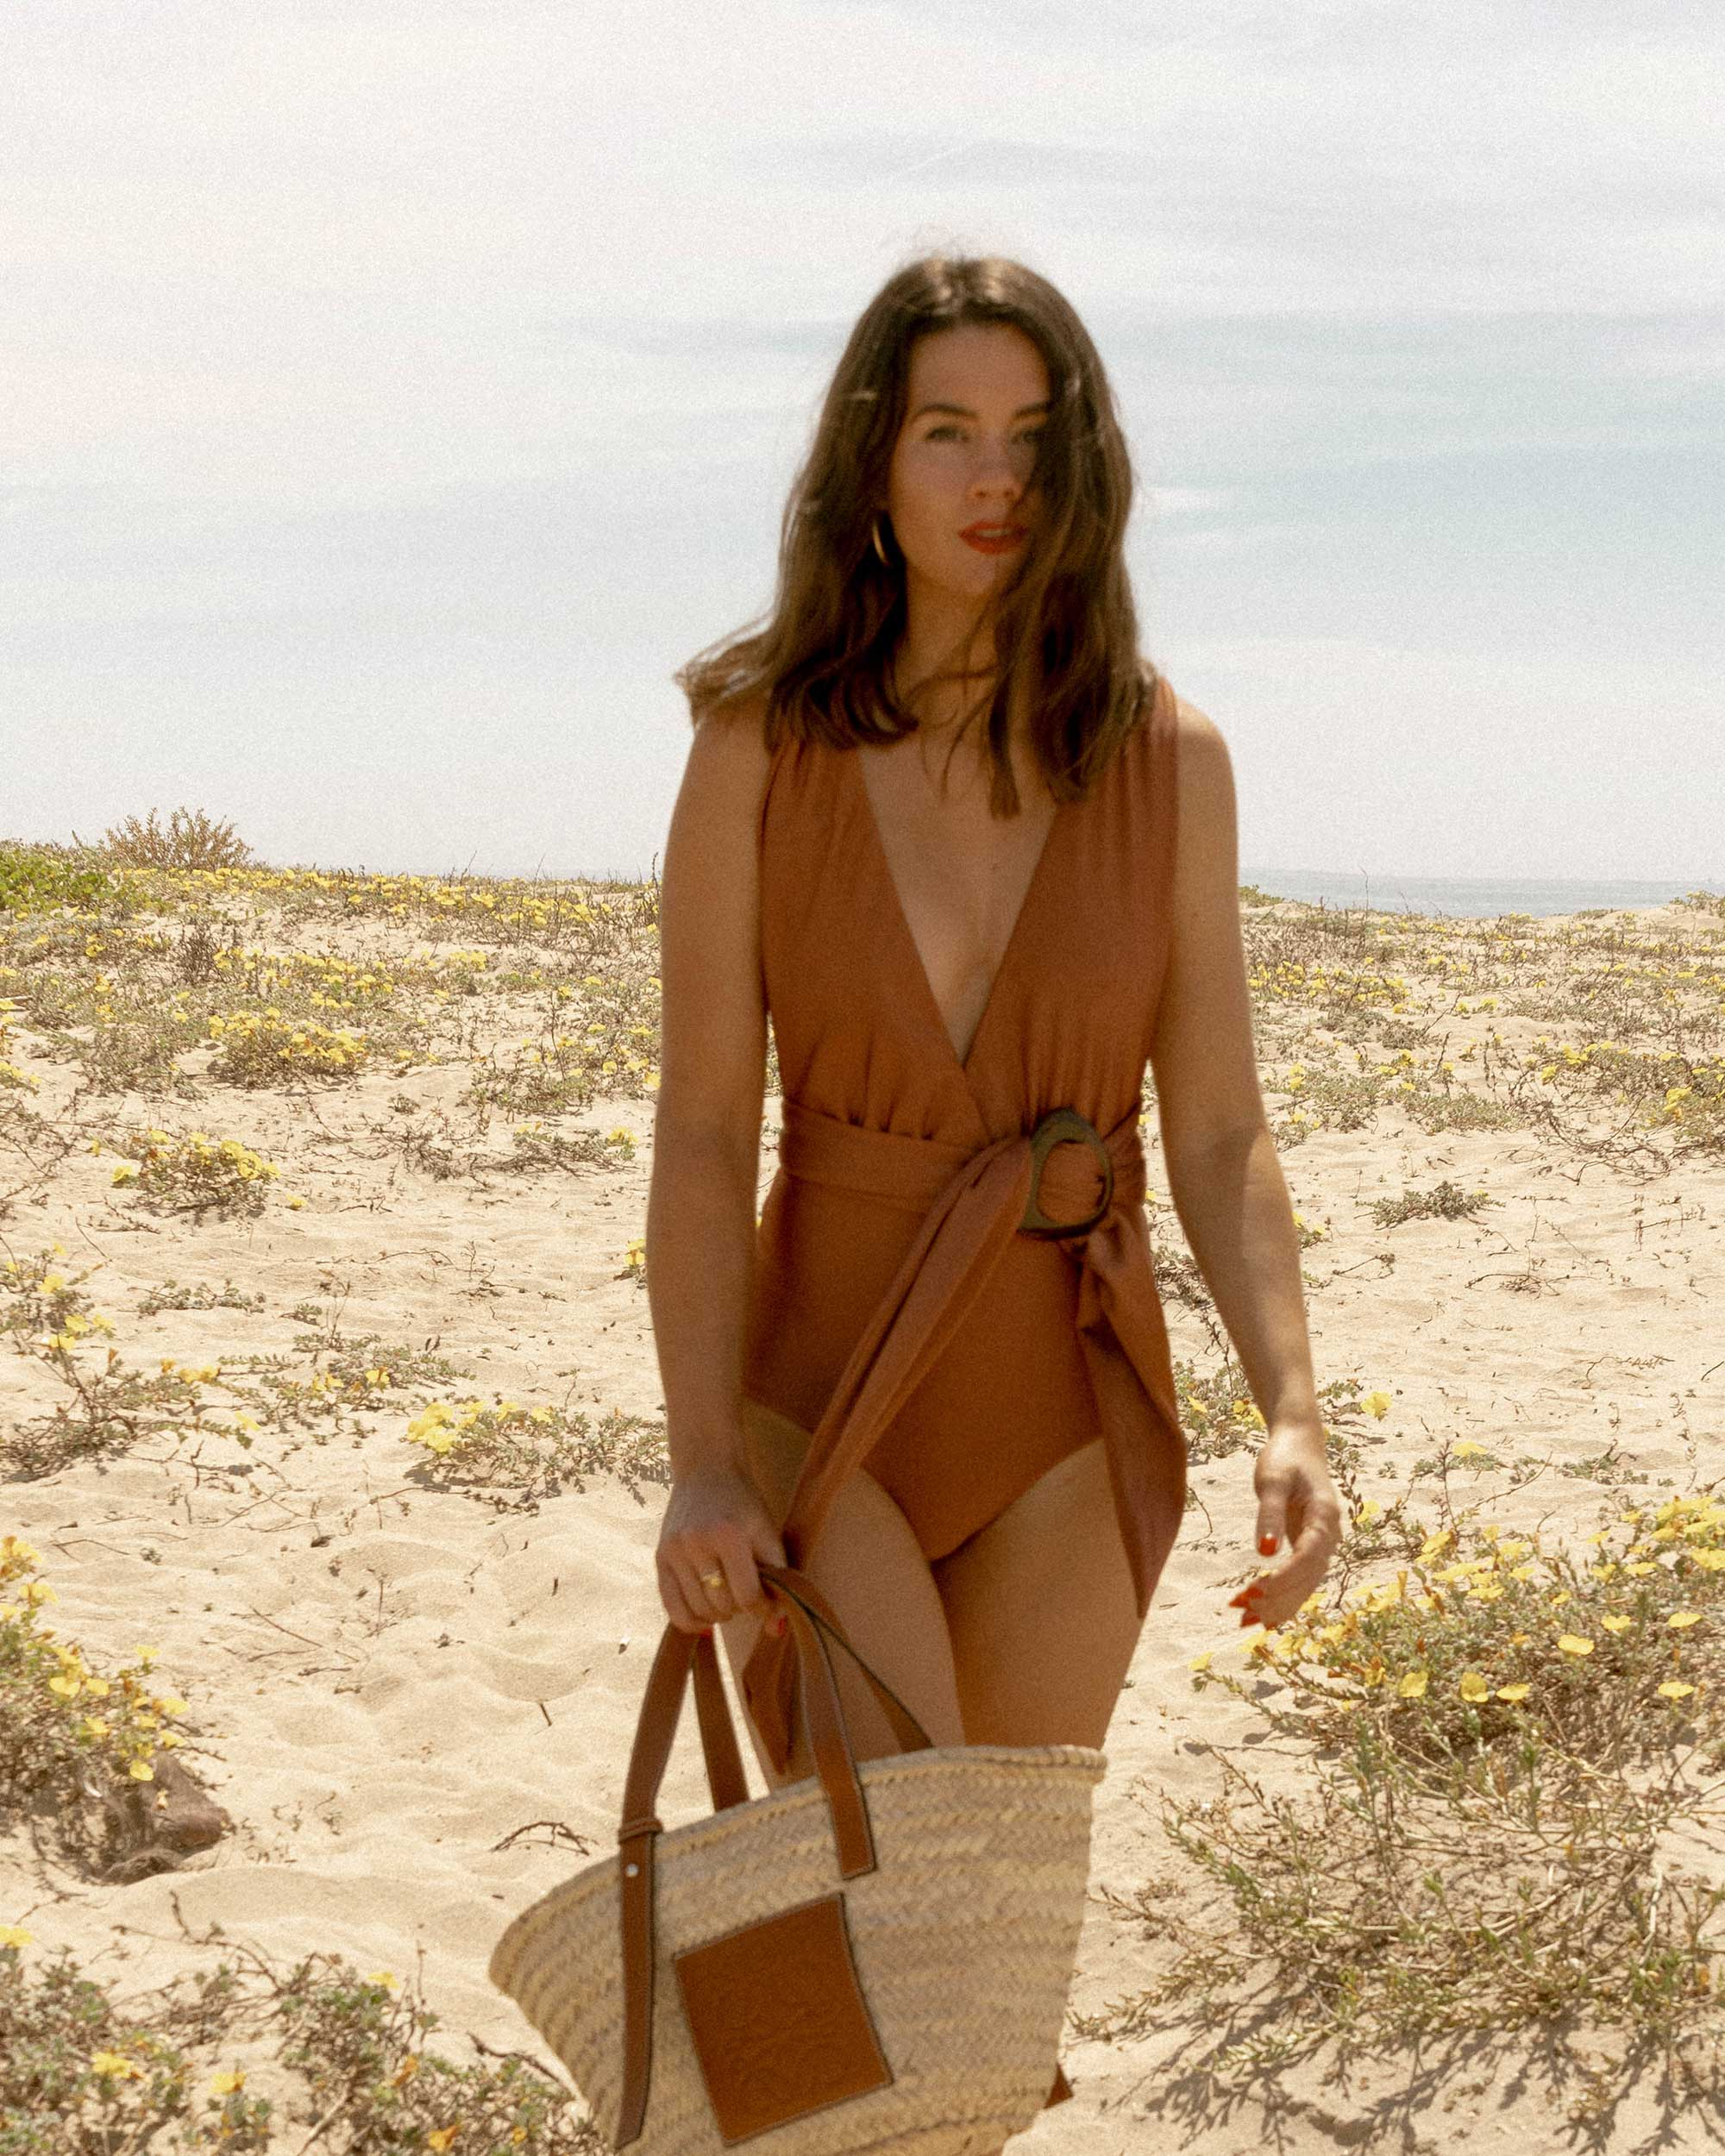 Sarah Butler of Sarah Styles Seattle wears Patbo solid brown belted swimsuit and Loewe Small Raffia Basket Tote Bag for Stylish one-piece swimsuit to wear to the beach | @sarahchristine -8.jpg